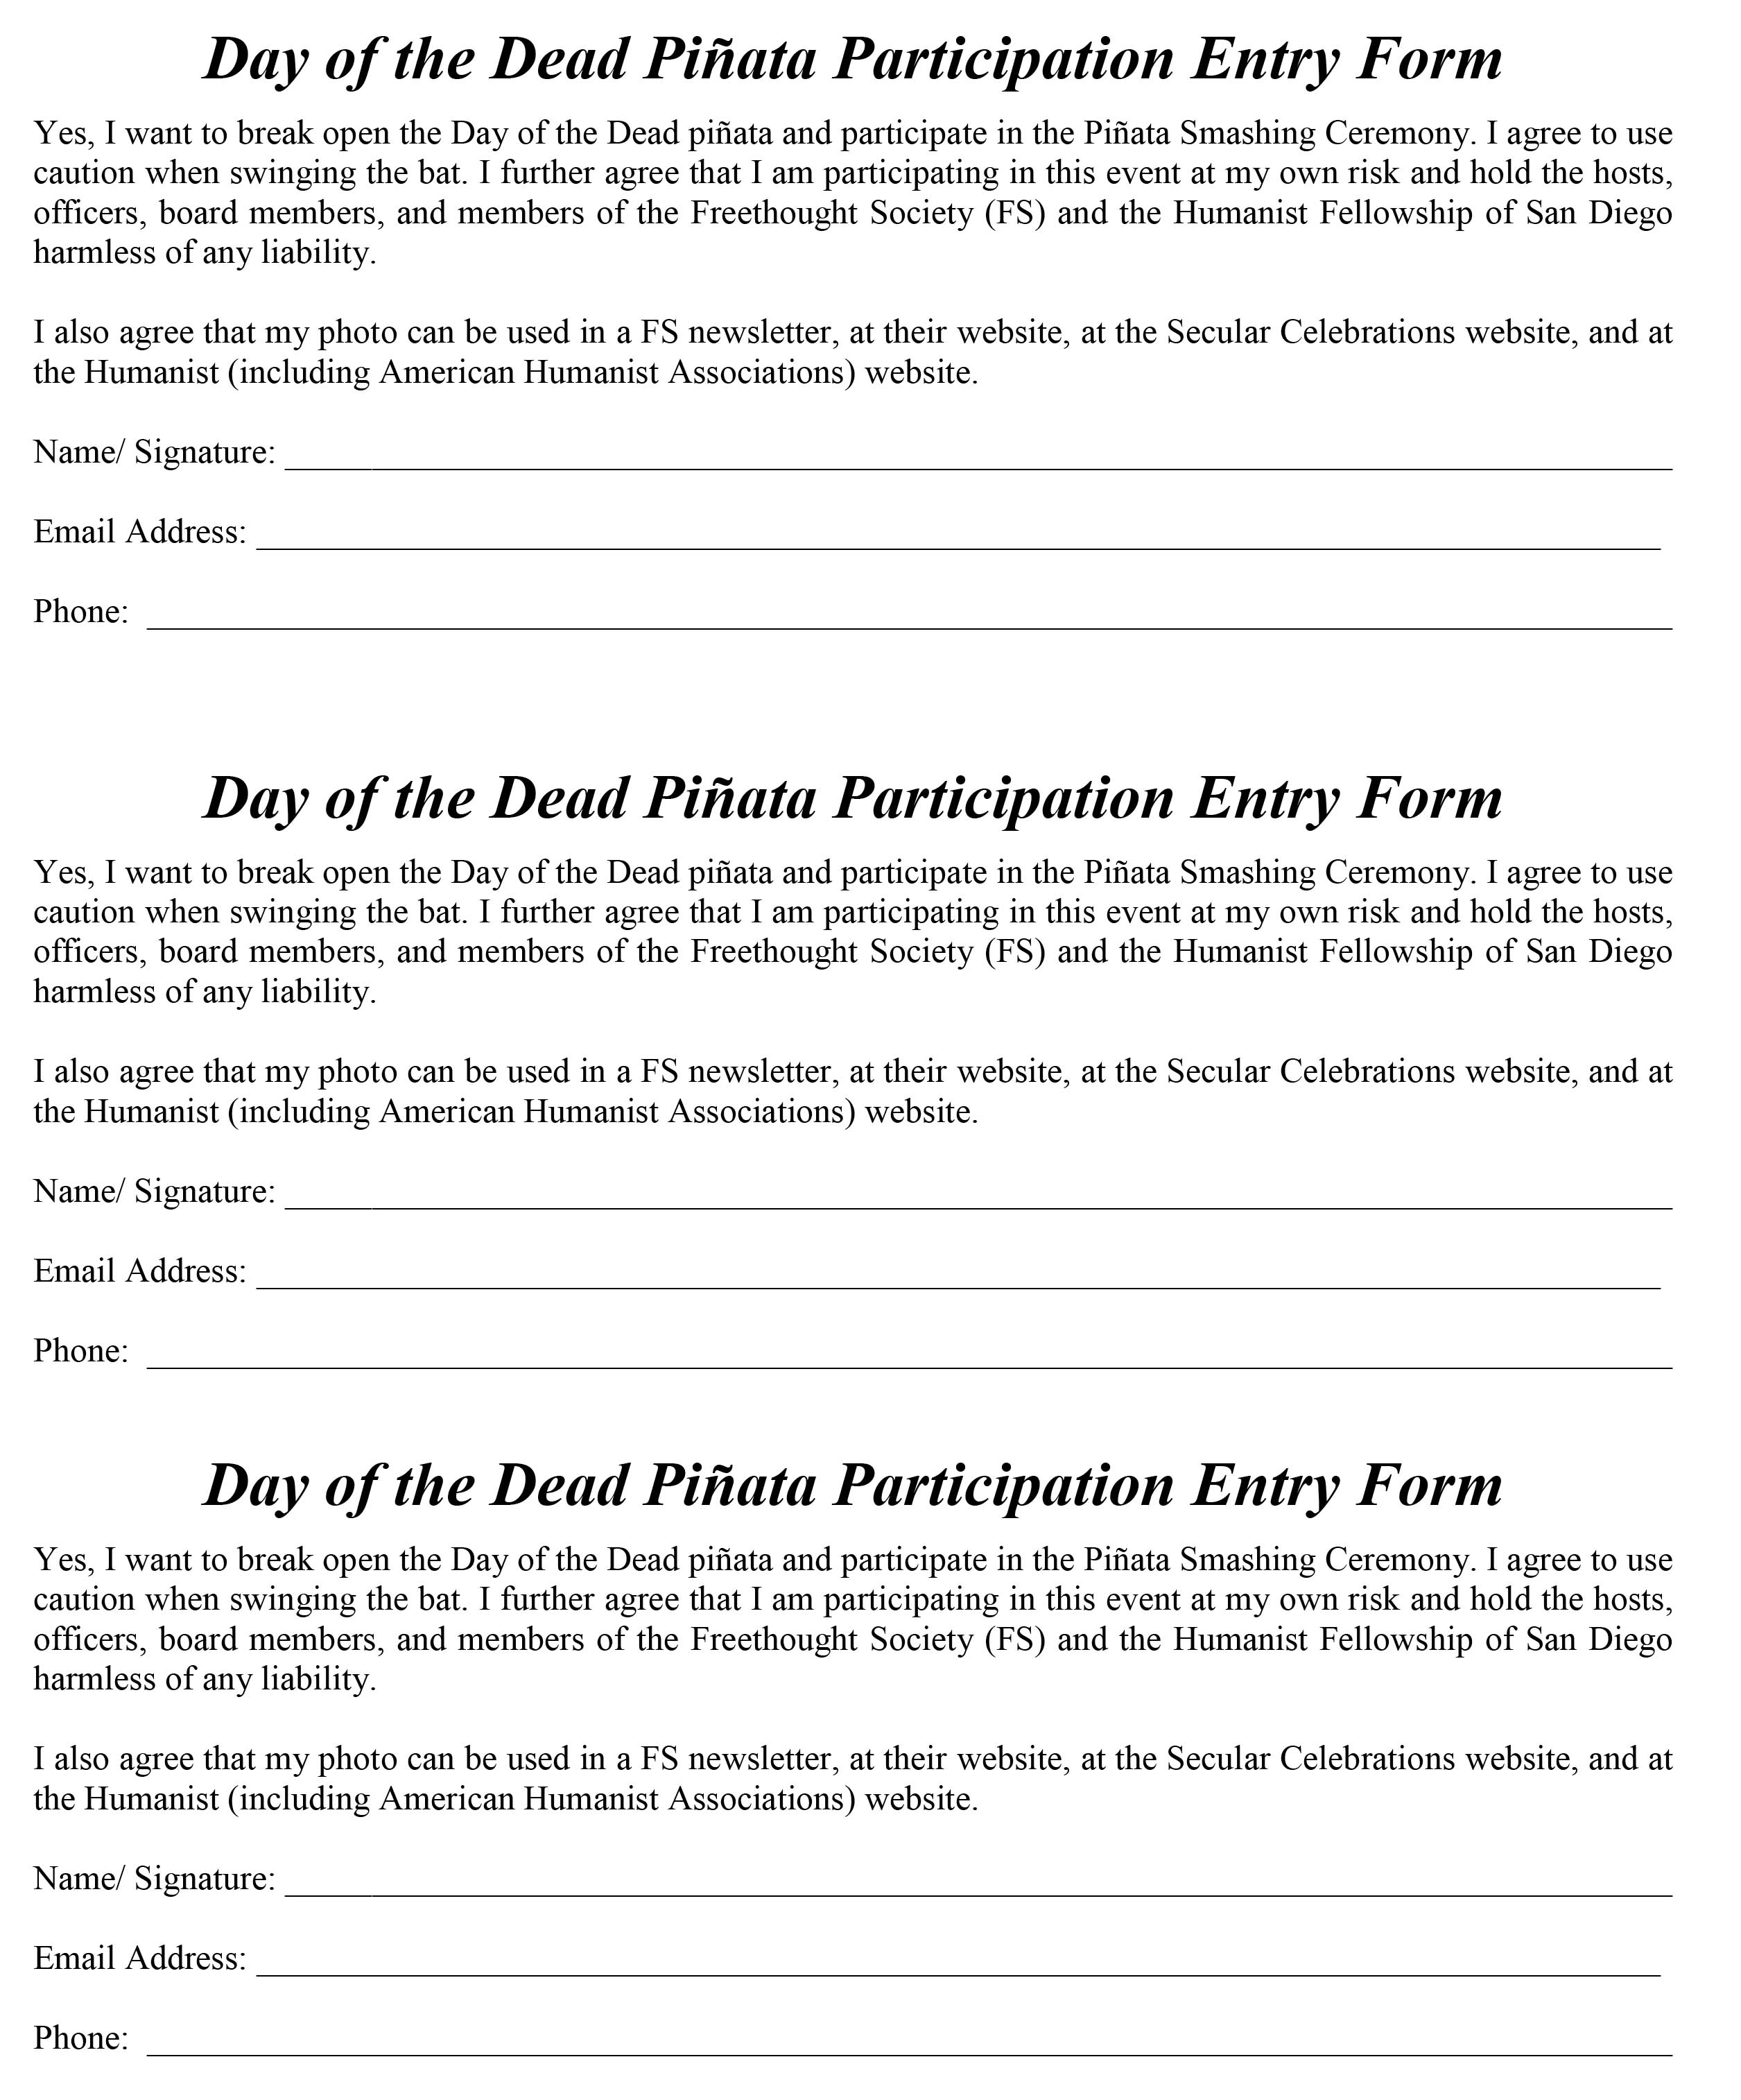 DOD pinata entry form